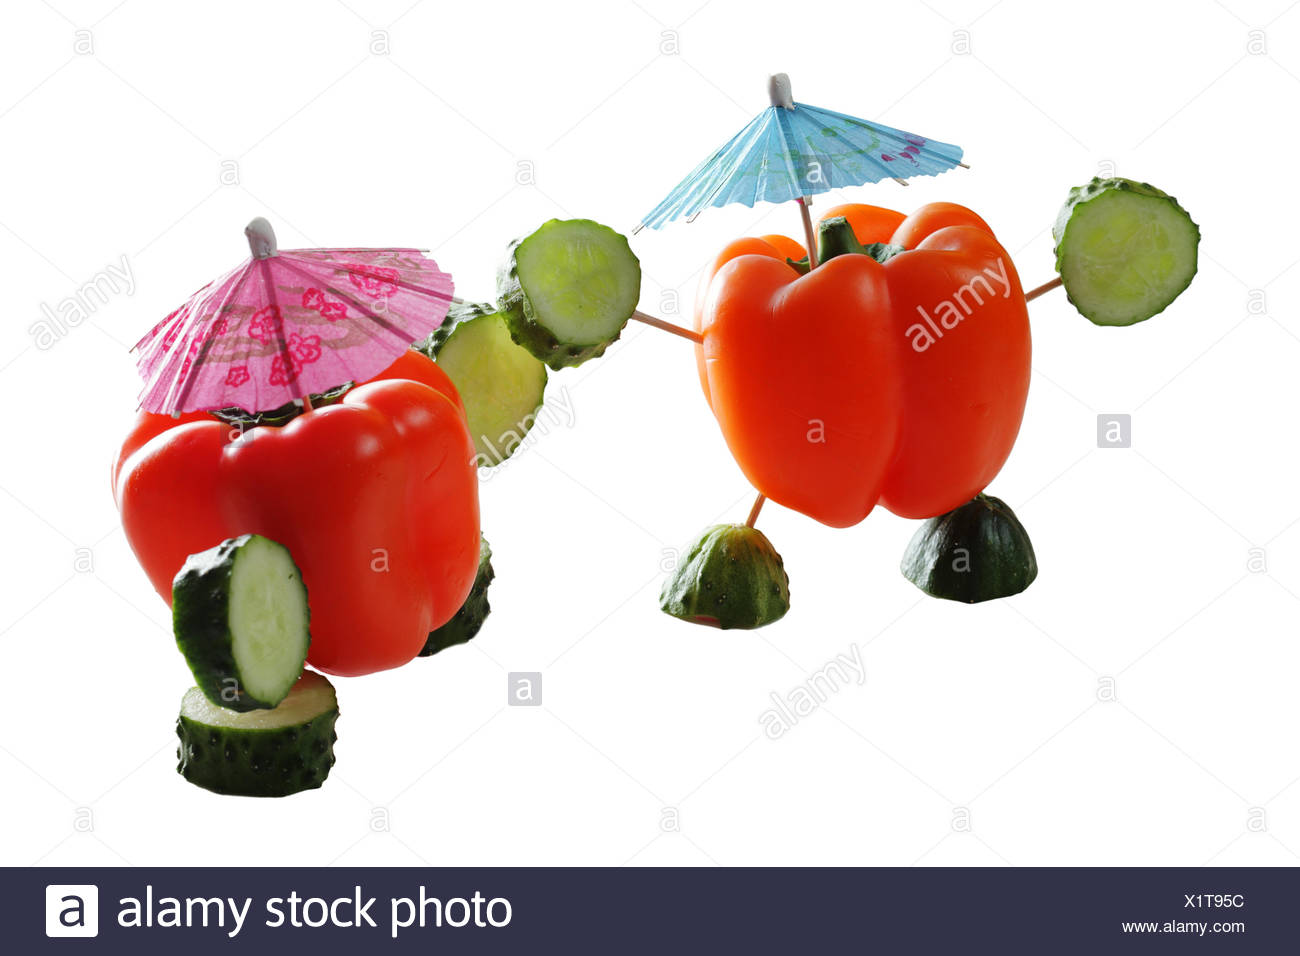 Two paprika personages - Stock Image